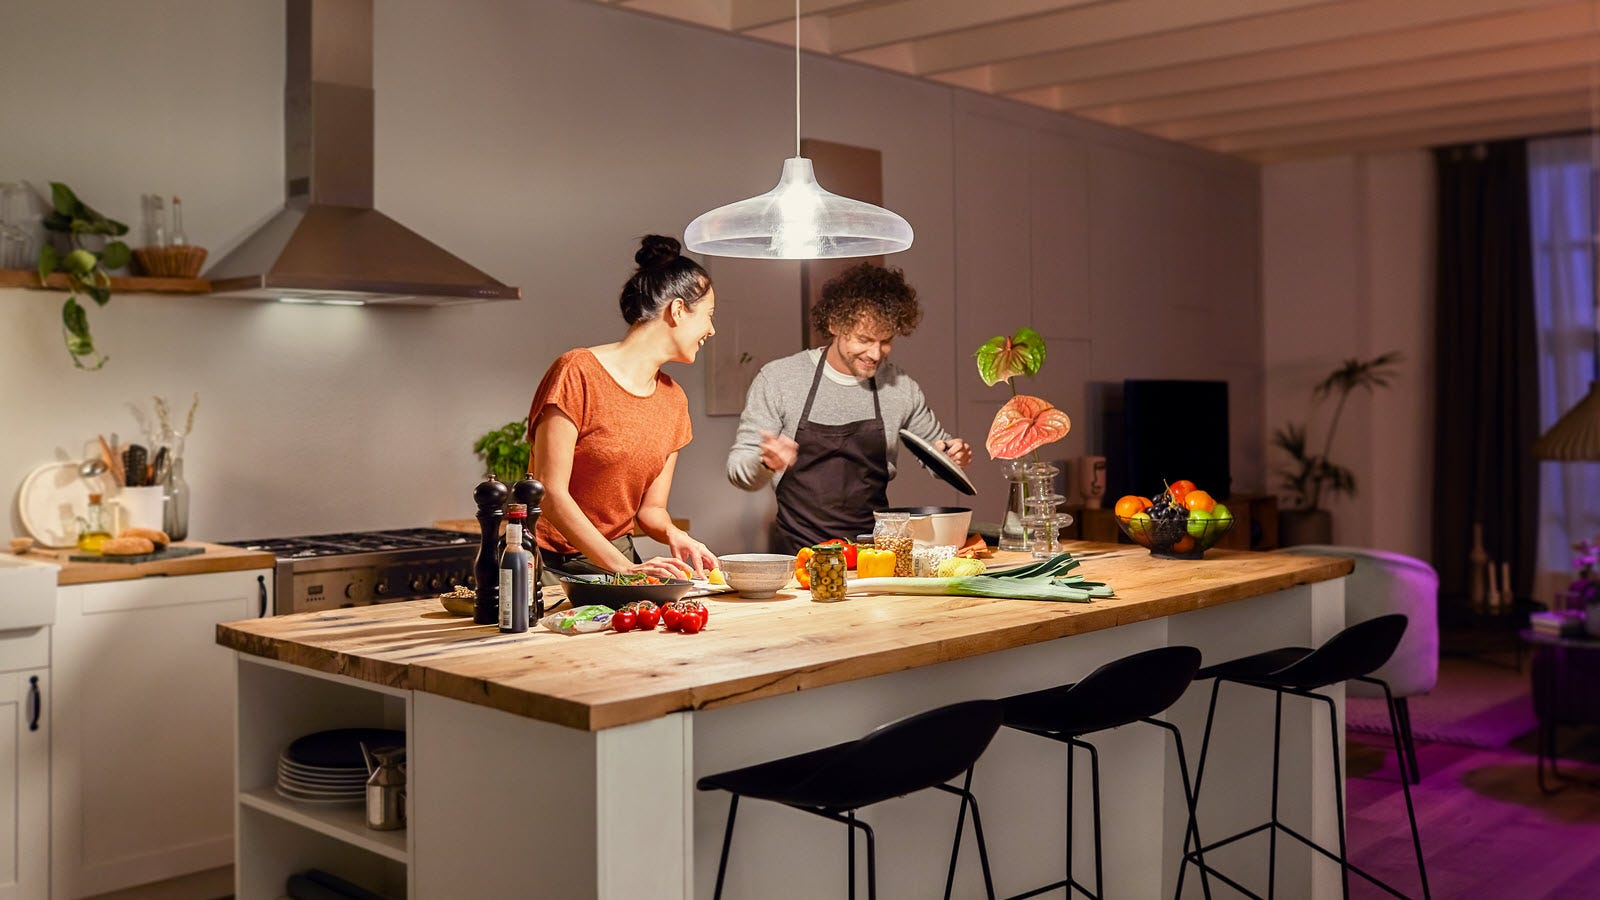 A photo of the Philips Hue white smart bulb in a kitchen.